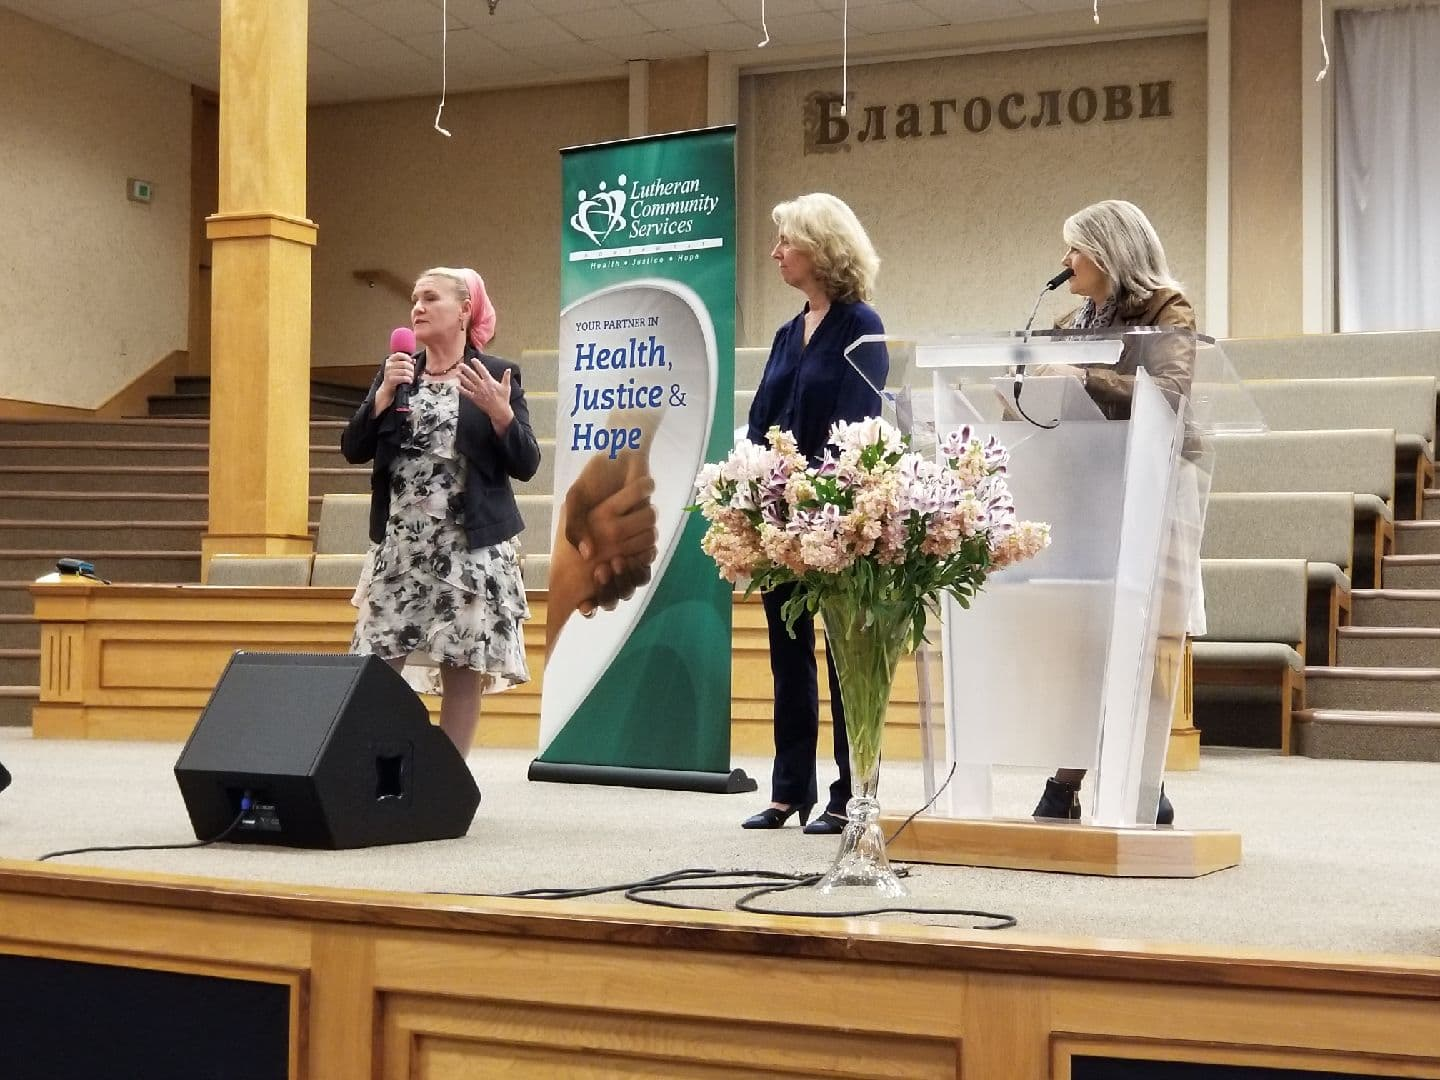 Slavic 30 Year Anniversary - June 28, 2018 at Ukrainian Bible Church in Fairview. Click here for photos.